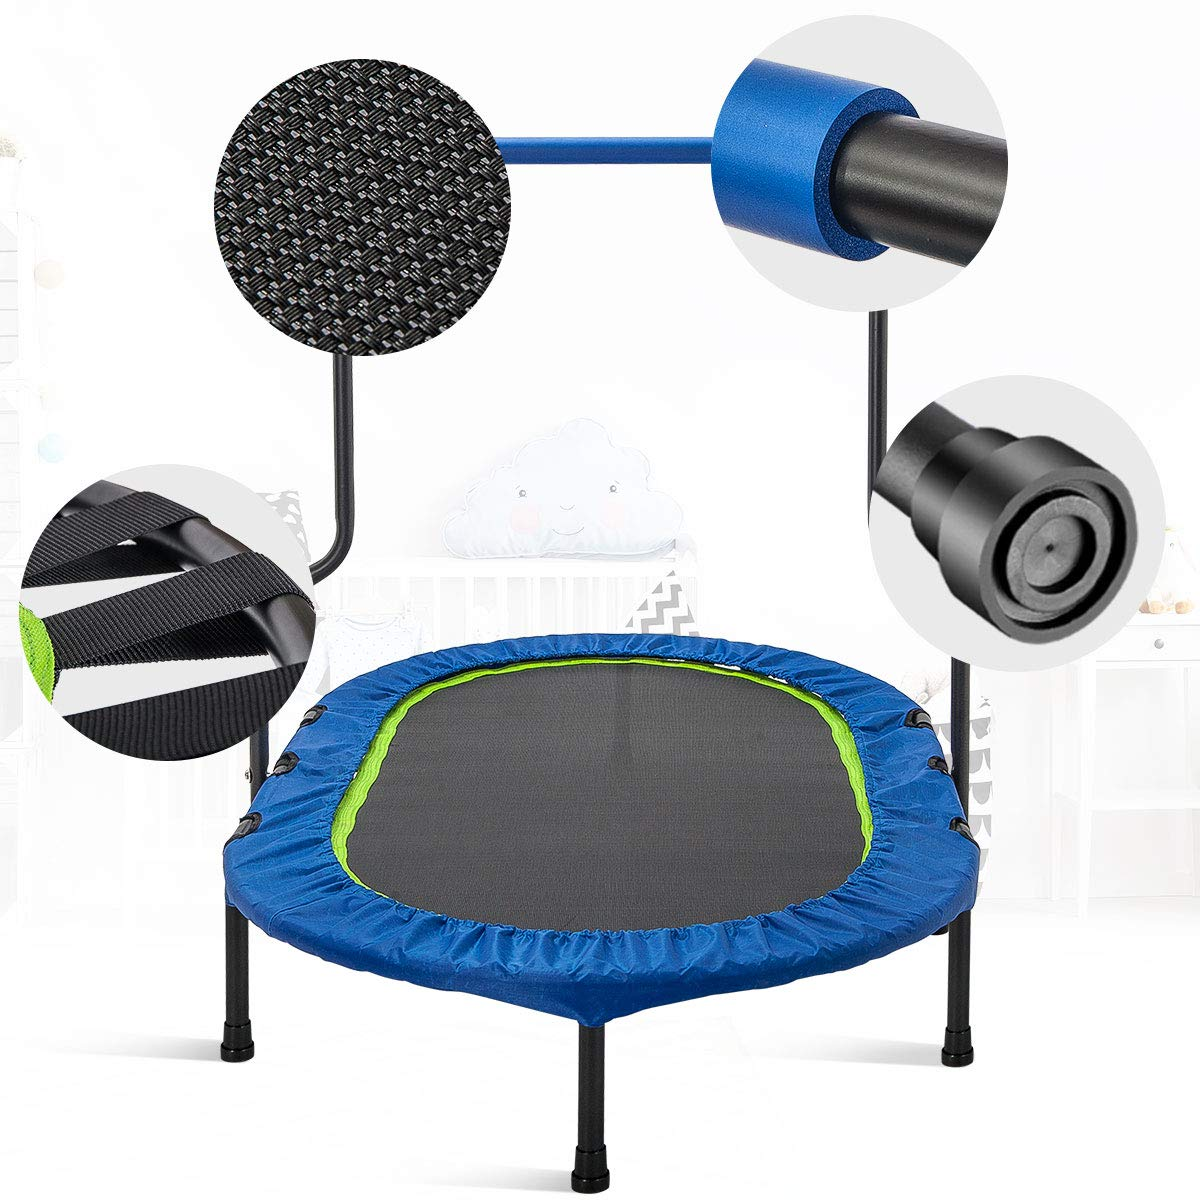 Merax Mini Rebounder Trampoline with Handle for Two Kids, Parent-Child Trampoline (Blue) by Merax (Image #3)